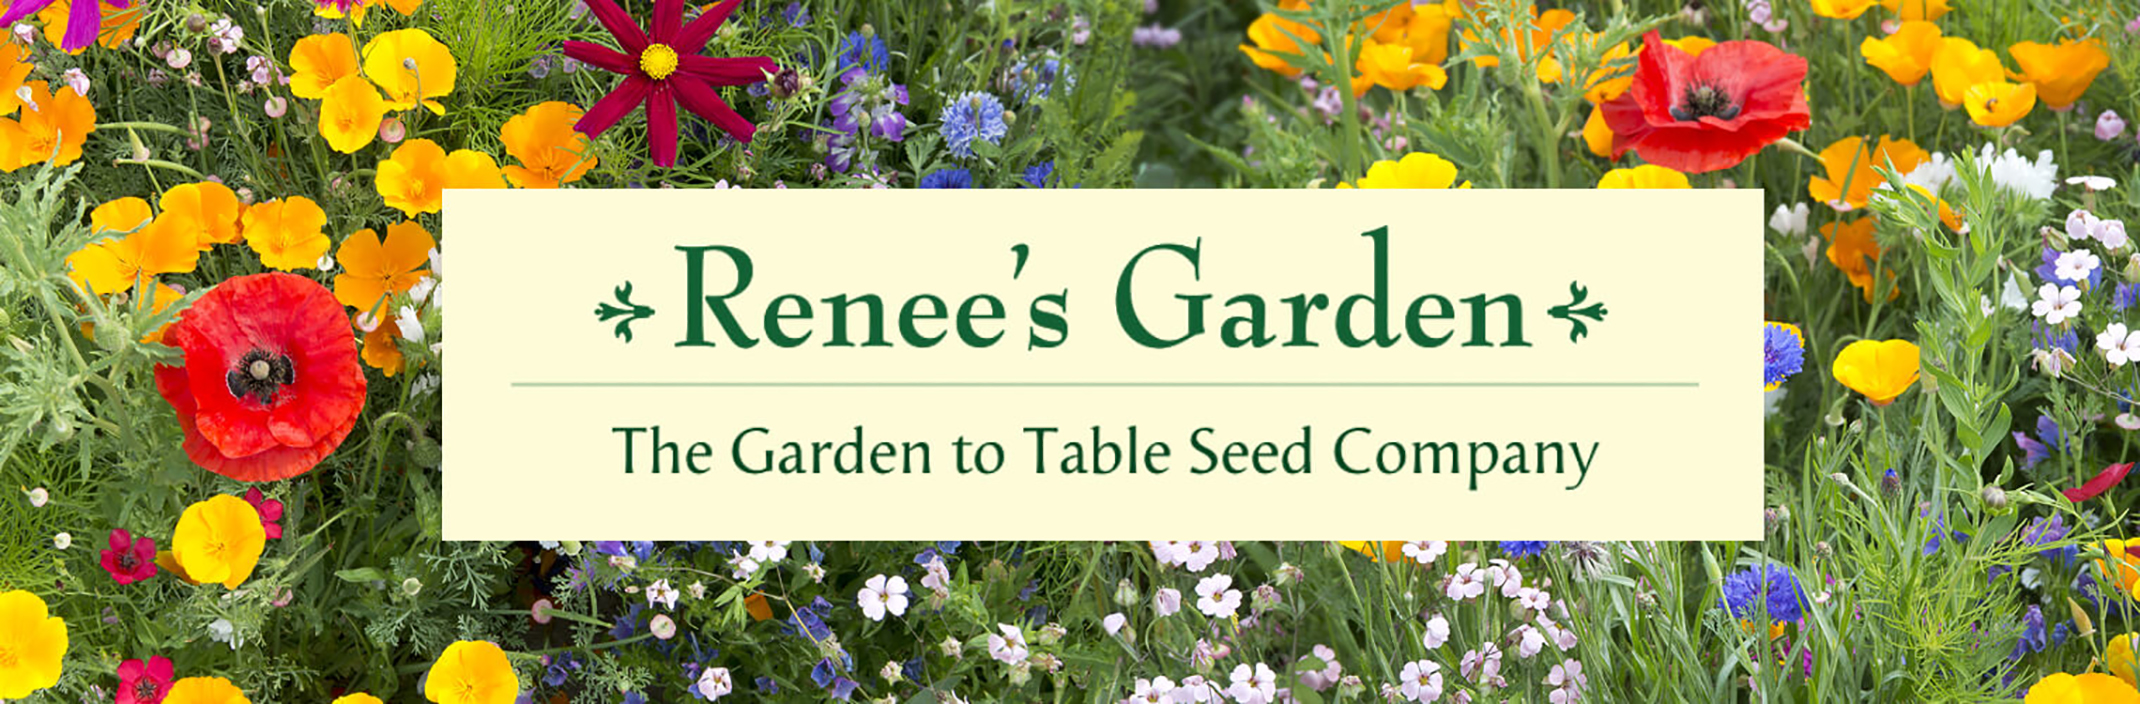 Renee's Garden the garden to table seed company logo in the middle of an image of wild flower